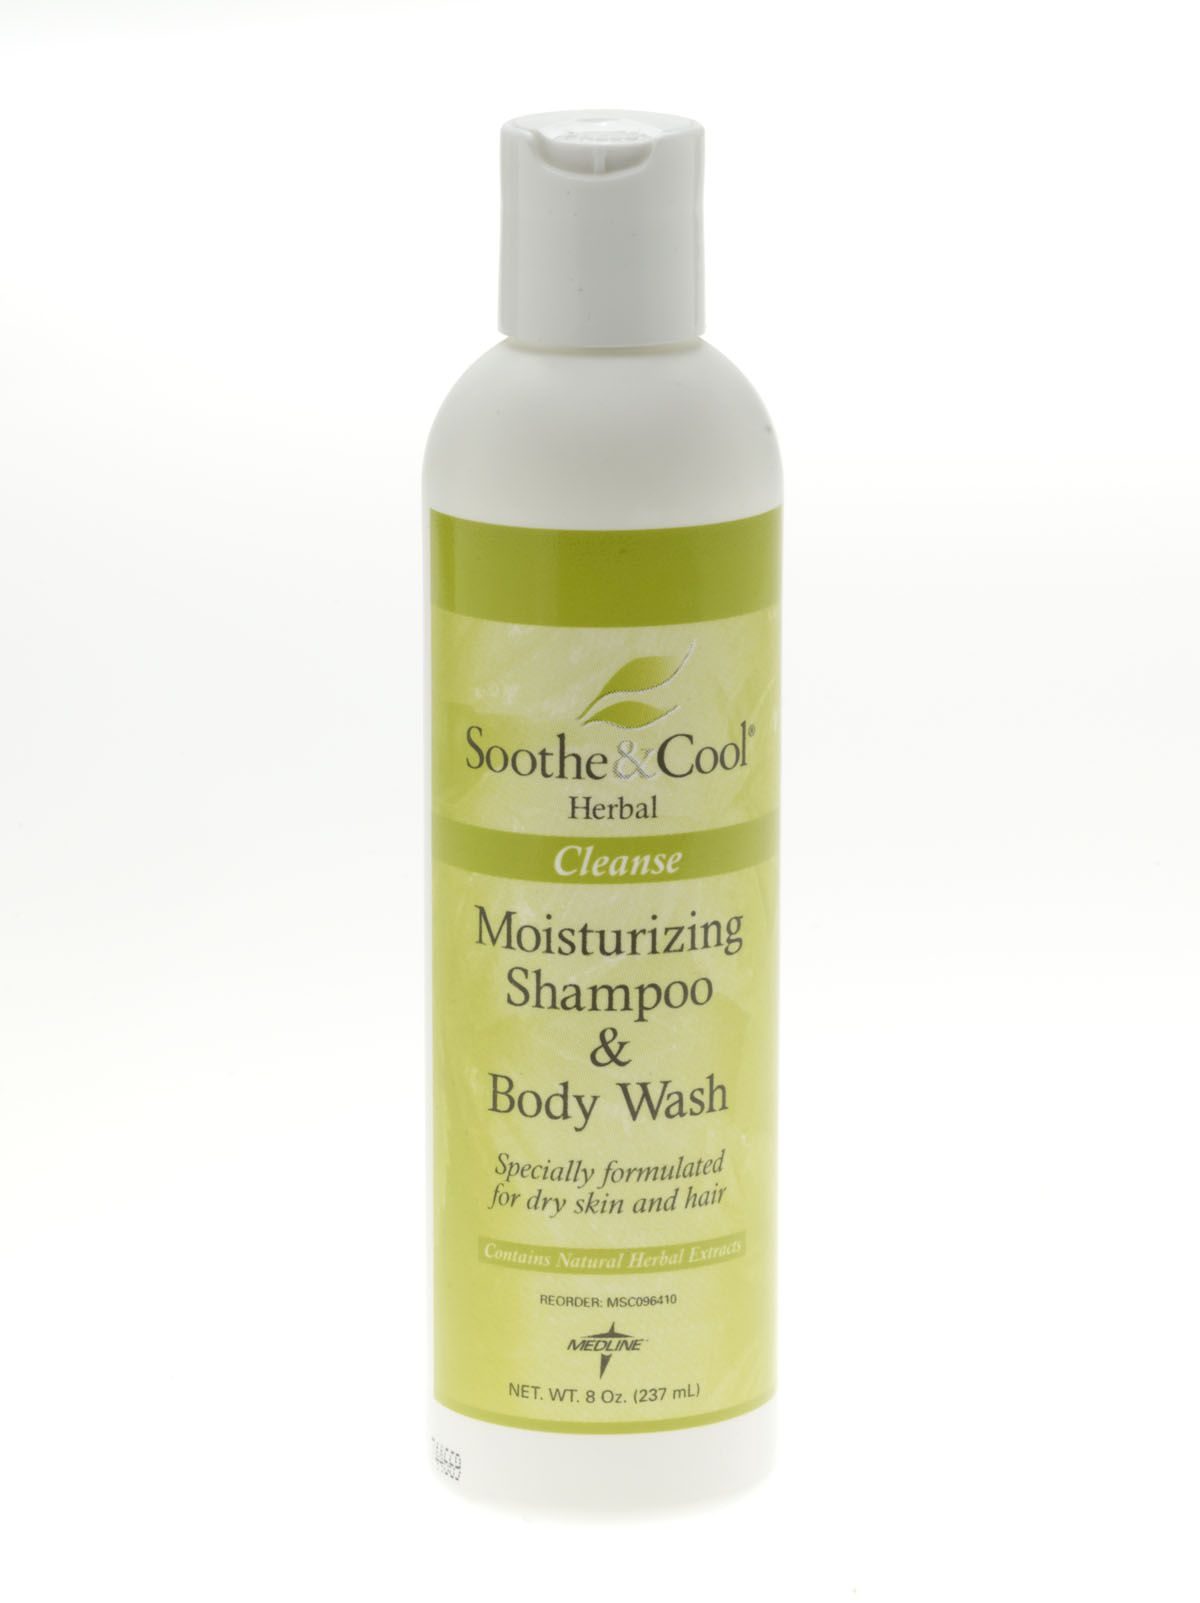 Soothe & Cool Herbal Shampoo & Body Wash - Shampoo-Body Wsh, Soothe&Cool Herbal, 8Oz, Box of 12